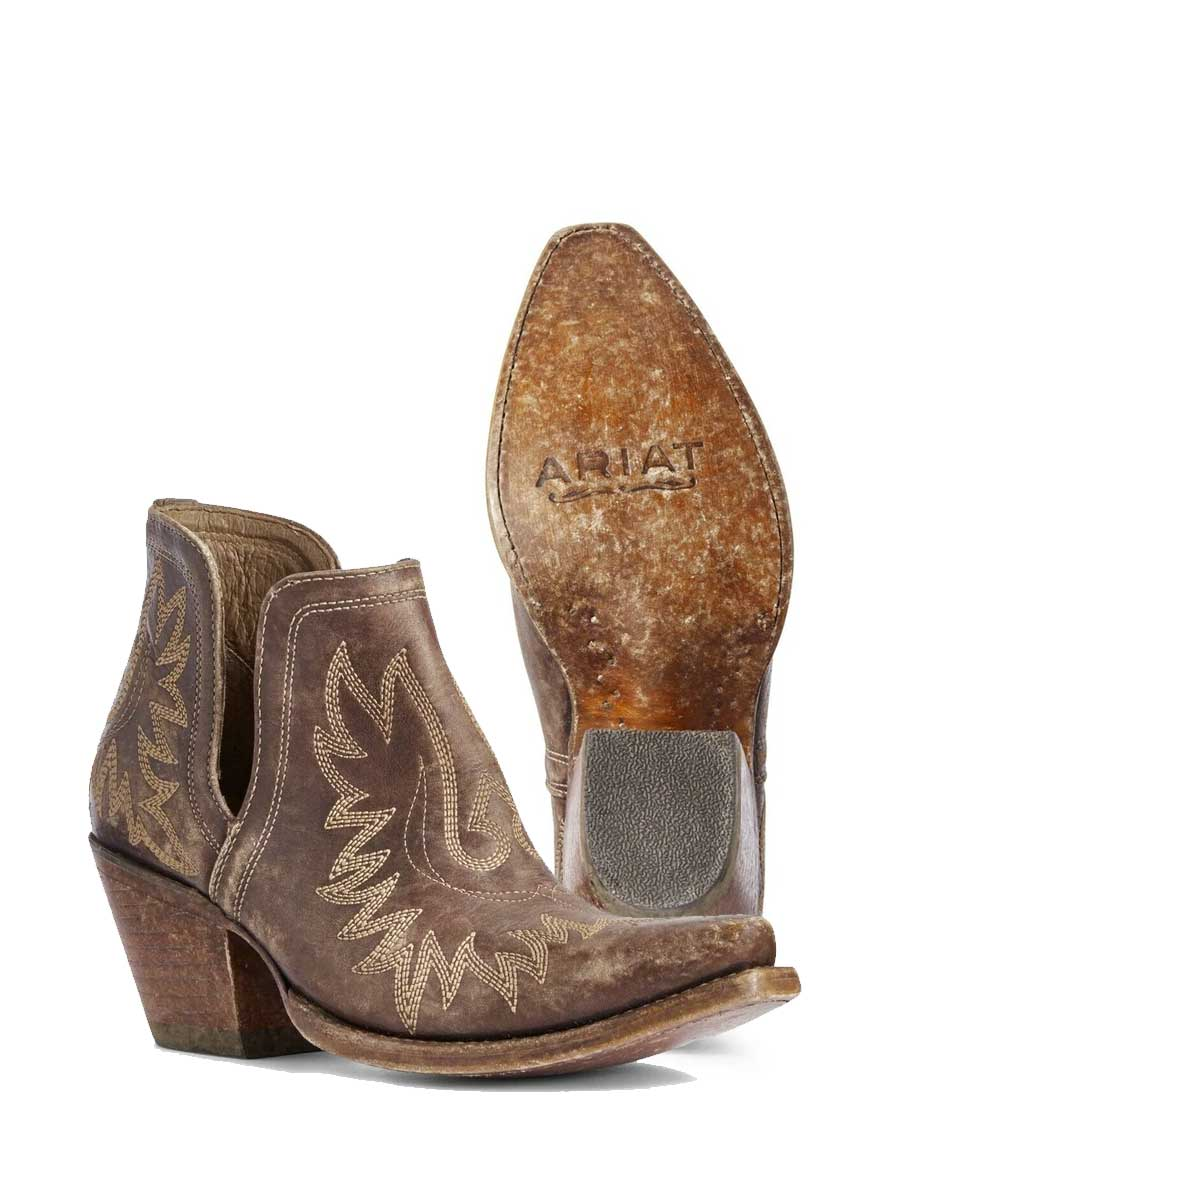 Ariat Ladies Dixon Distressed Brown Western Ankle Boots